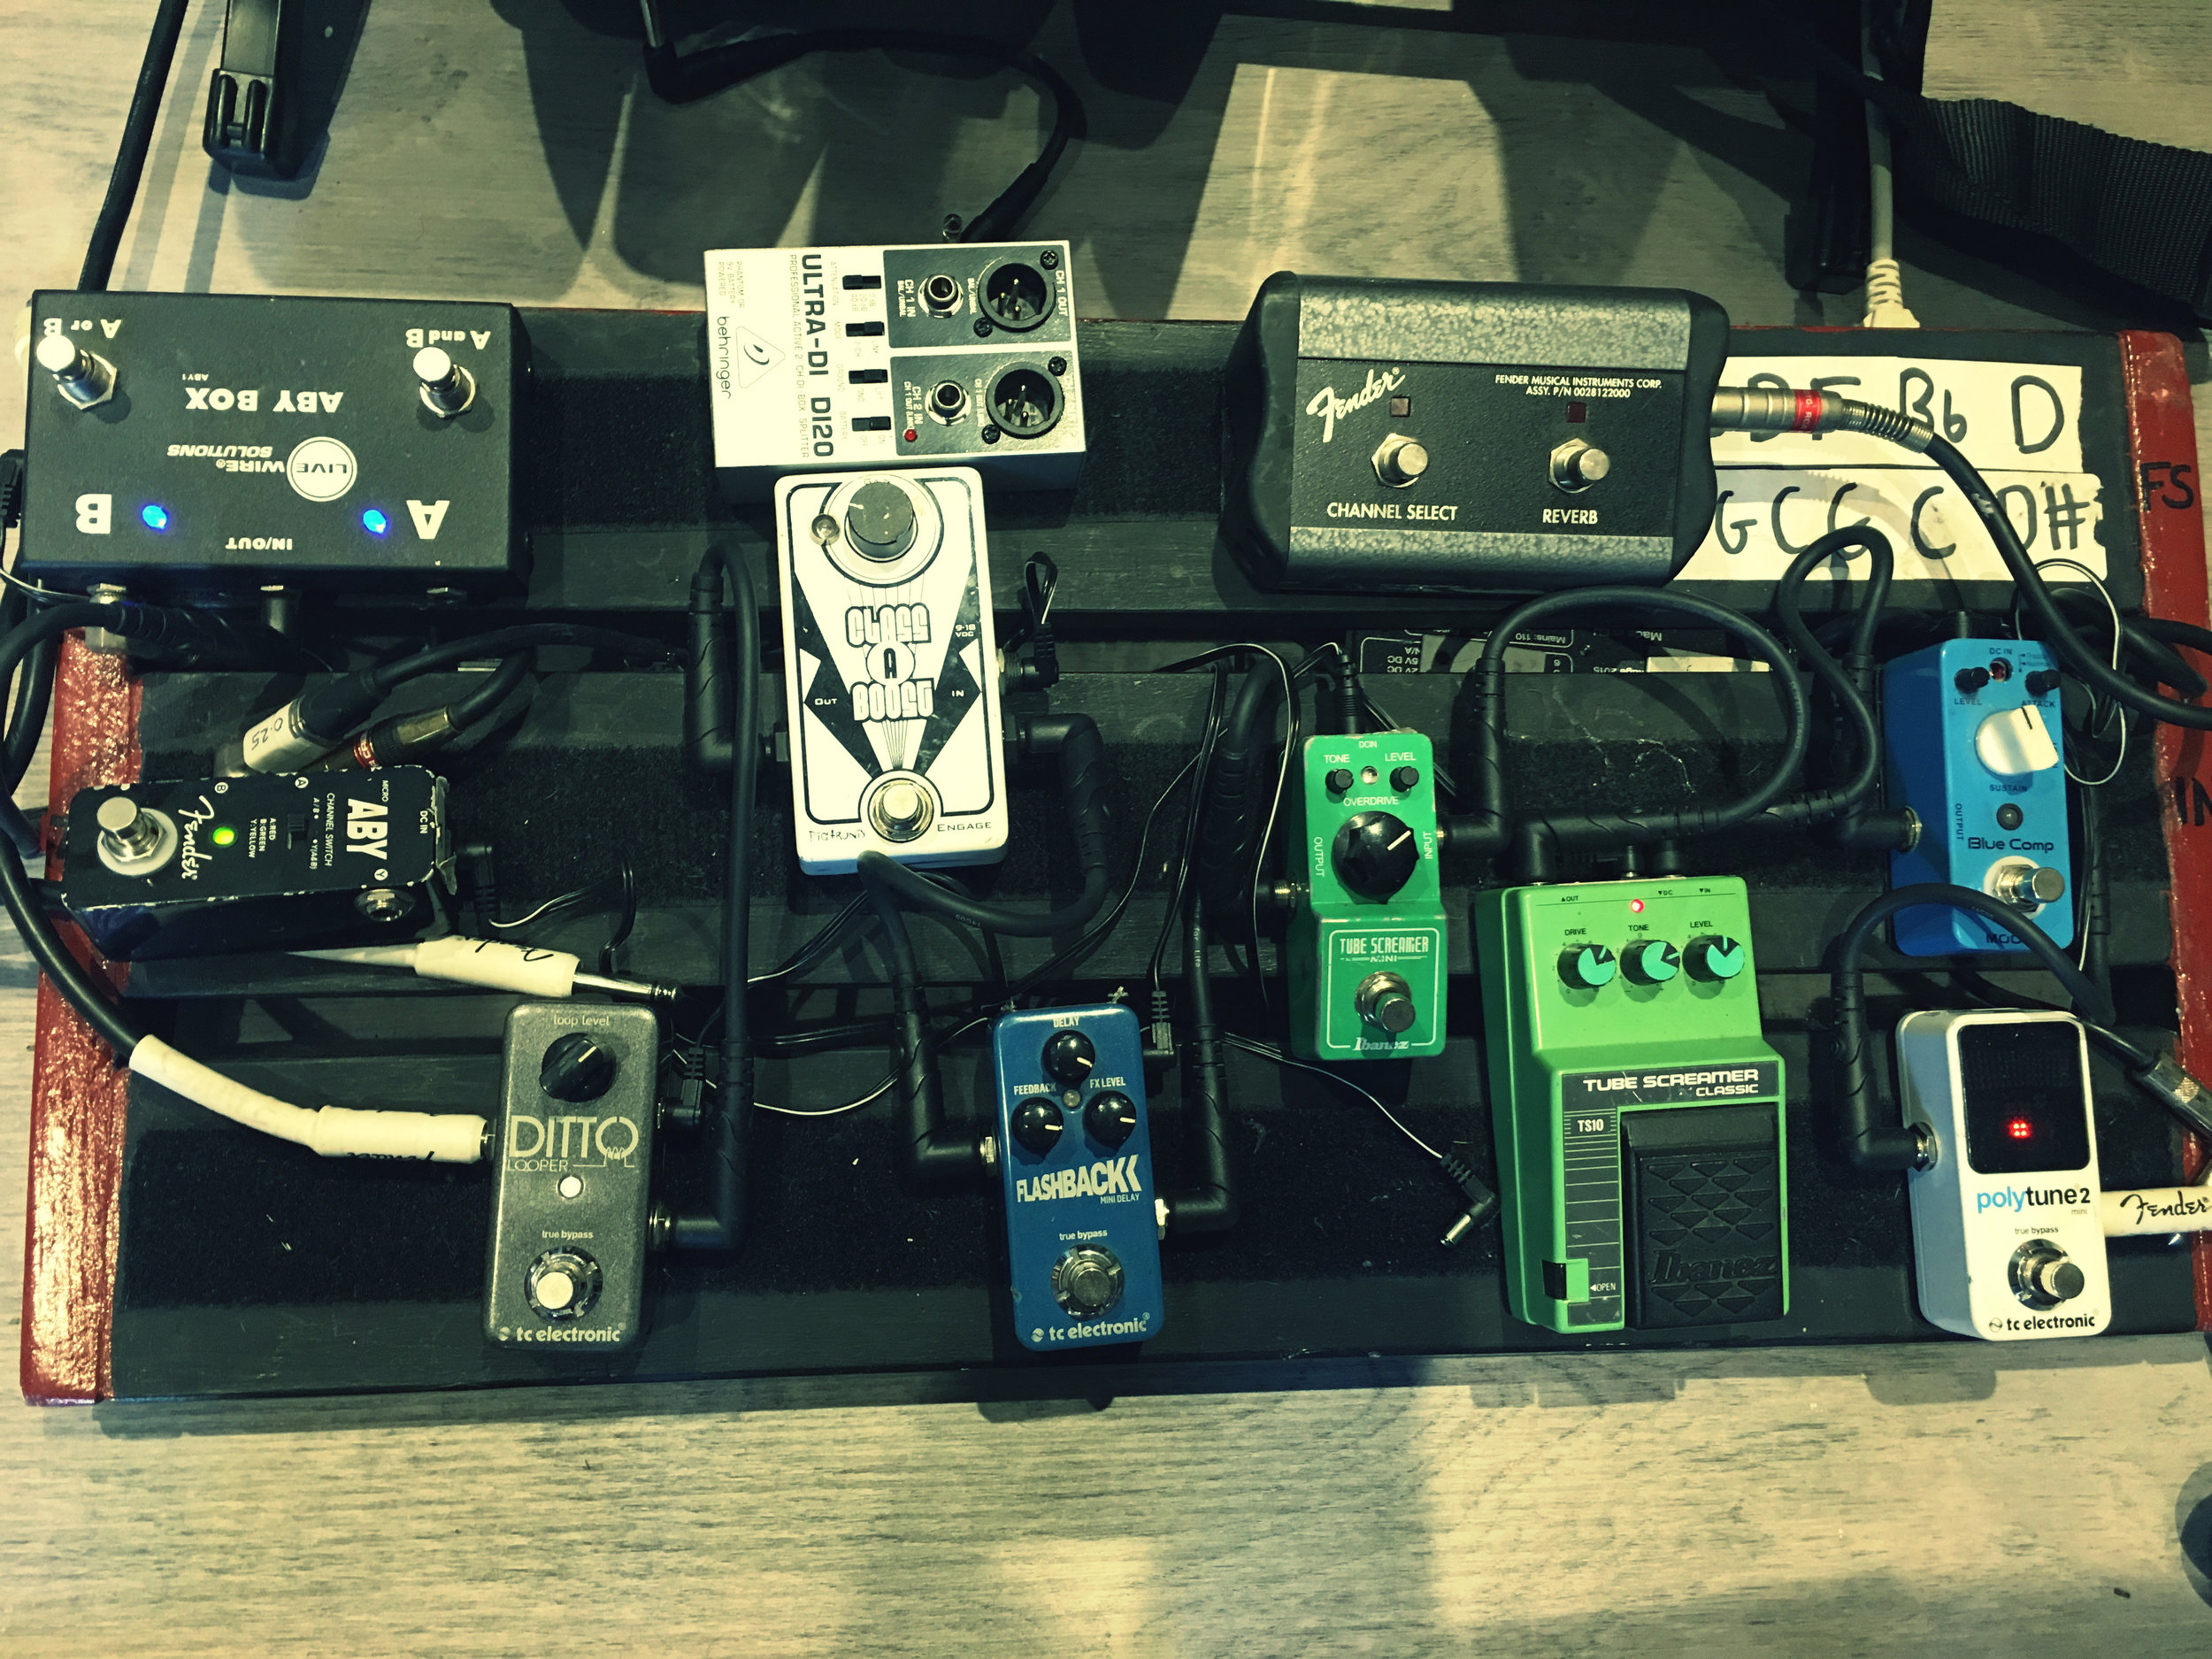 From left to right; LiveWire ABY Switcher, Fender ABY Switcher, TC Electronic Ditto Looper, Behringer Ultra DI, Pigtronix Class A Booster, TC Electronic Flashback Delay, Fender Hot Rod Amp Switcher, Ibanez Tube Screamer Mini, Ibanez TS10 Tube Screamer Classic, Mooer Blue Compressor, Polytune2 Mini Pedal